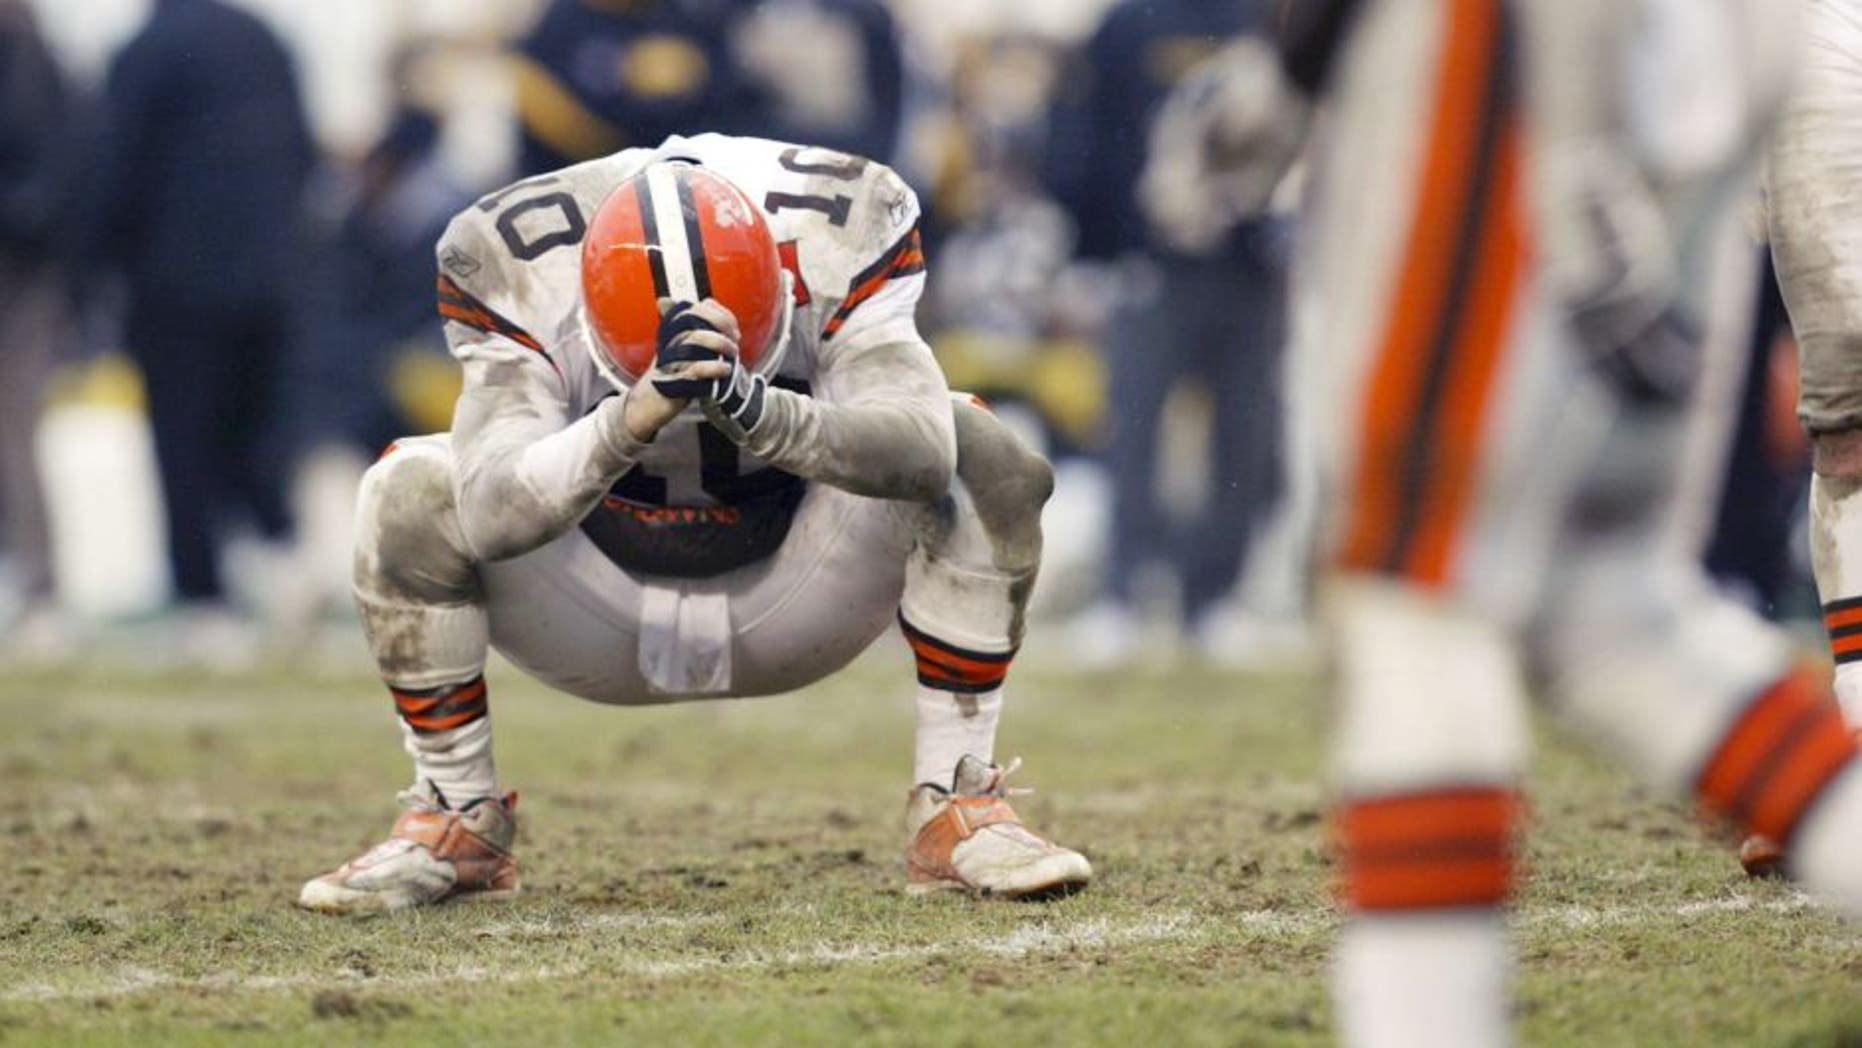 PITTSBURGH - JANUARY 5: Kelly Holcomb #10 of the Cleveland Browns looks down in frustration after an incomplete pass late in the game against the Pittsburgh Steelers during the AFC Wild Card game on January 5, 2002 at Heinz Field in Pittsburgh, Pennsylvania. The Steelers won 36-33. (Photo by Andy Lyons/Getty Images)